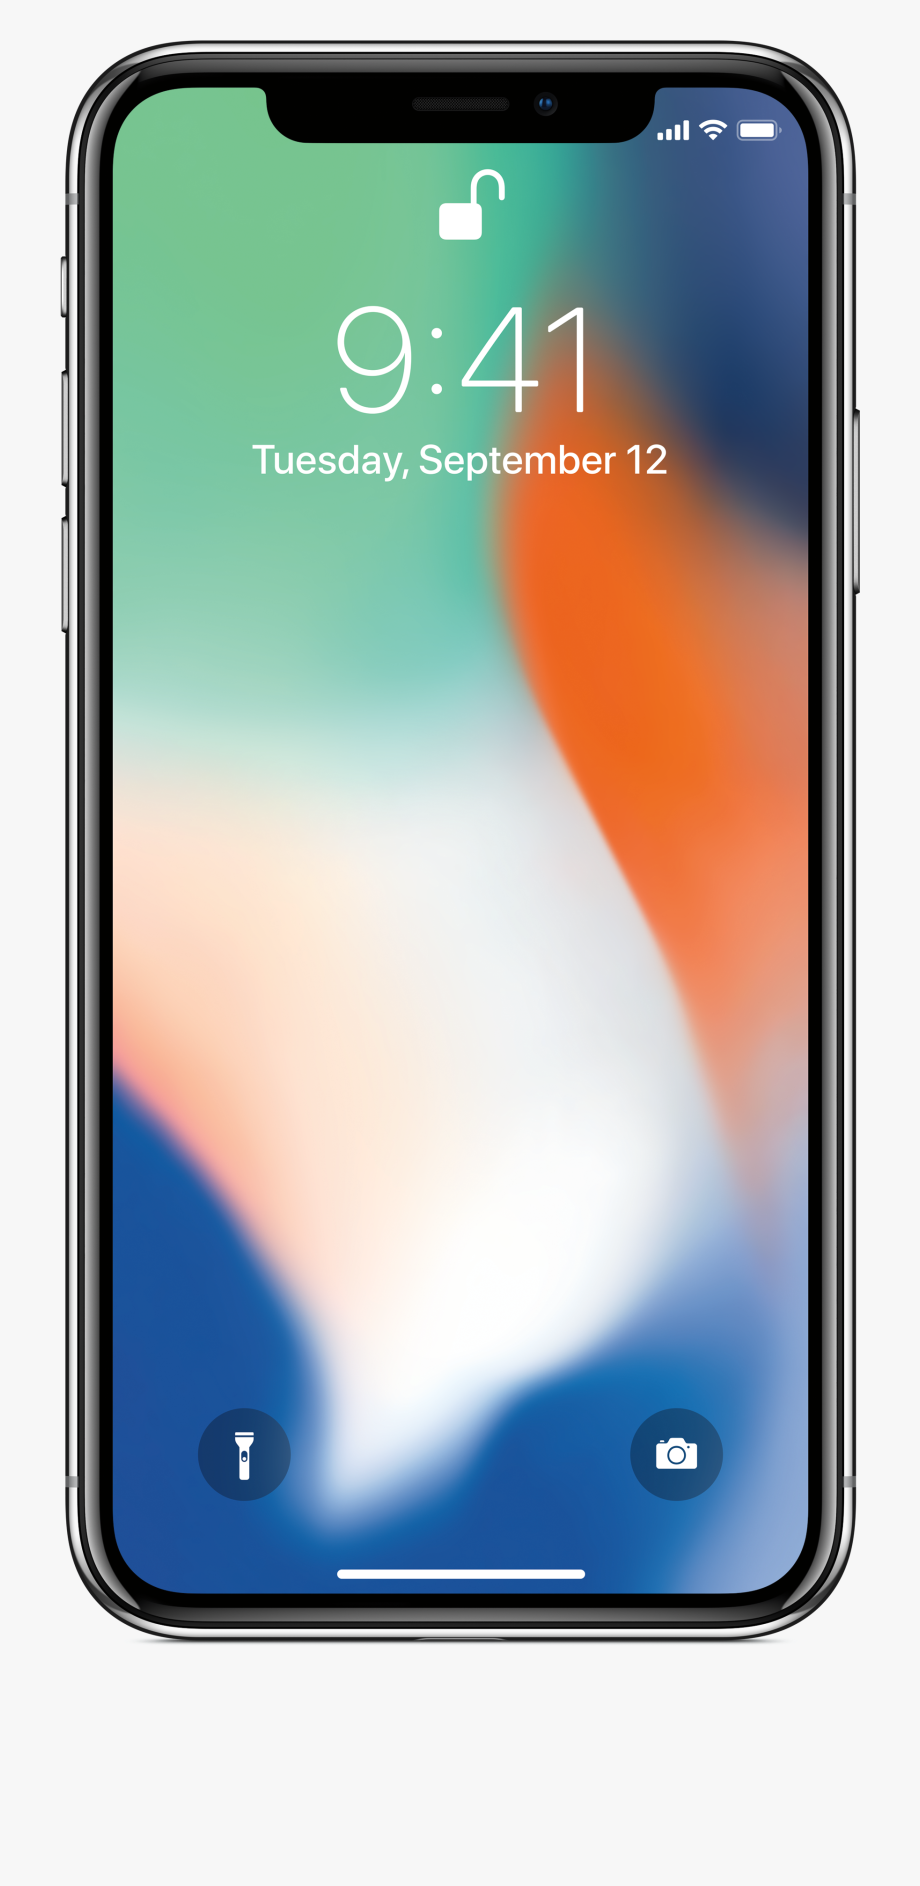 Apple Iphone X [92,000.